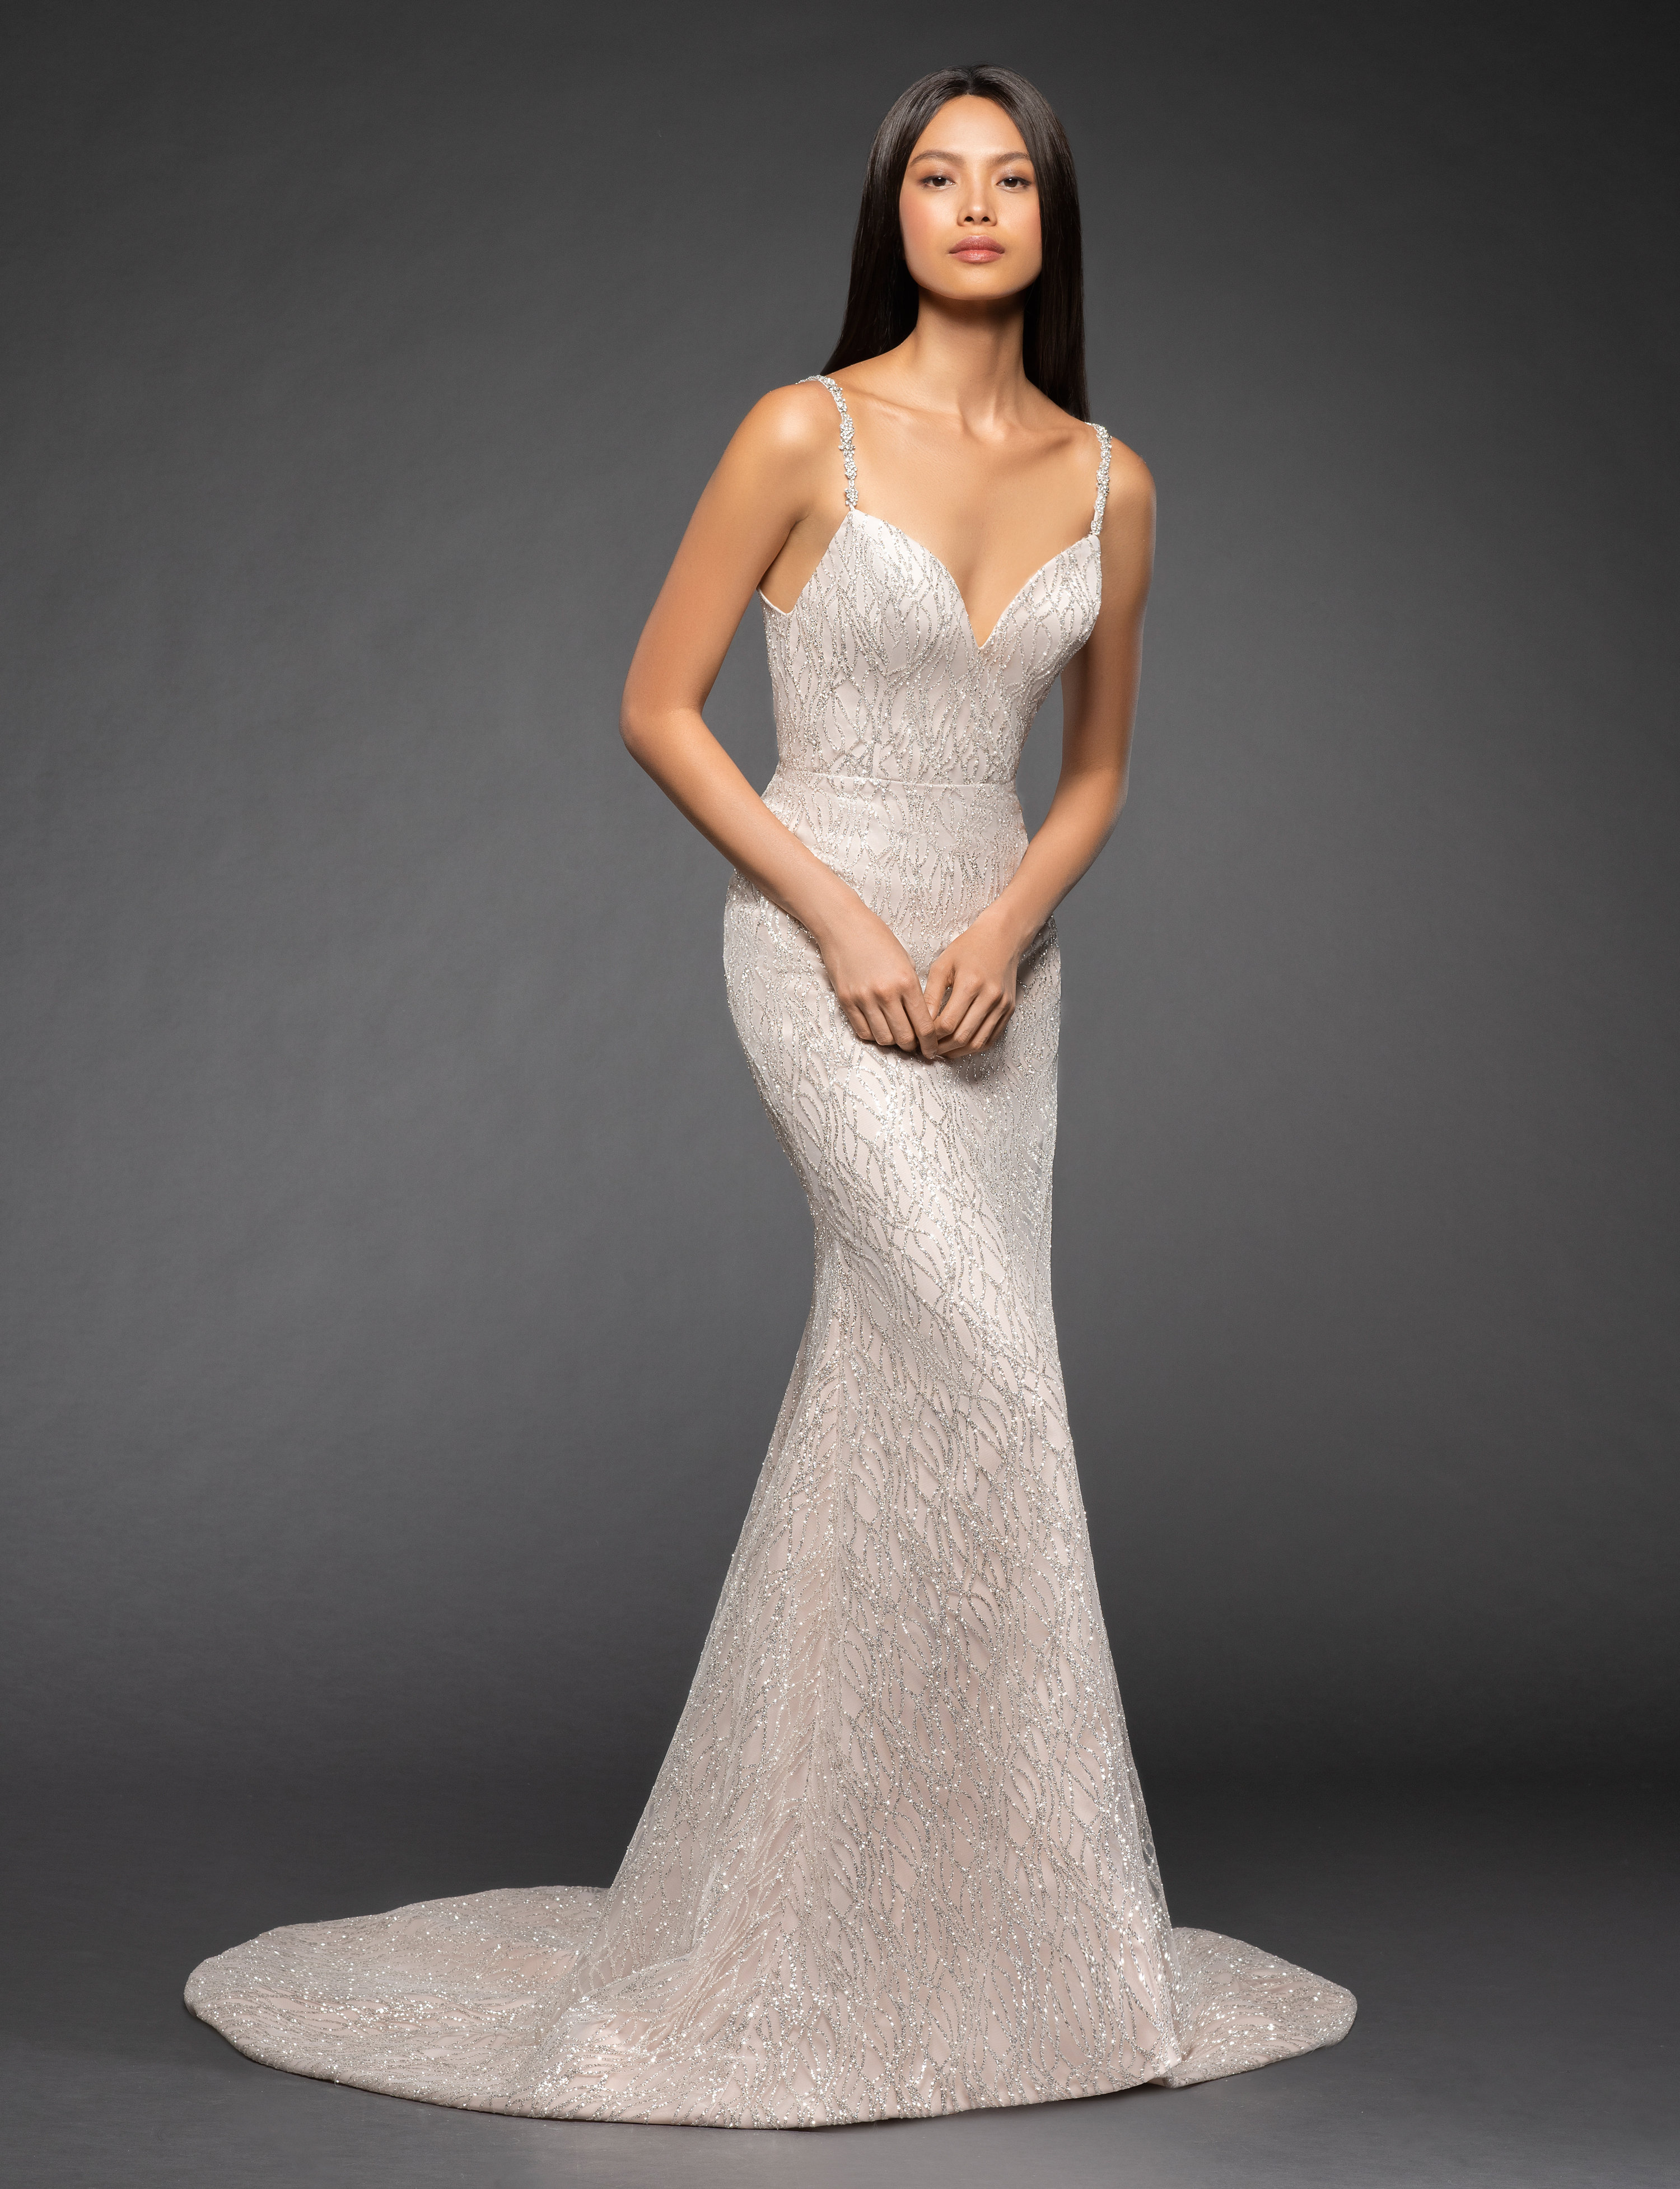 Bridal Gowns and Wedding Dresses by JLM Couture - Style 3857 Elisa